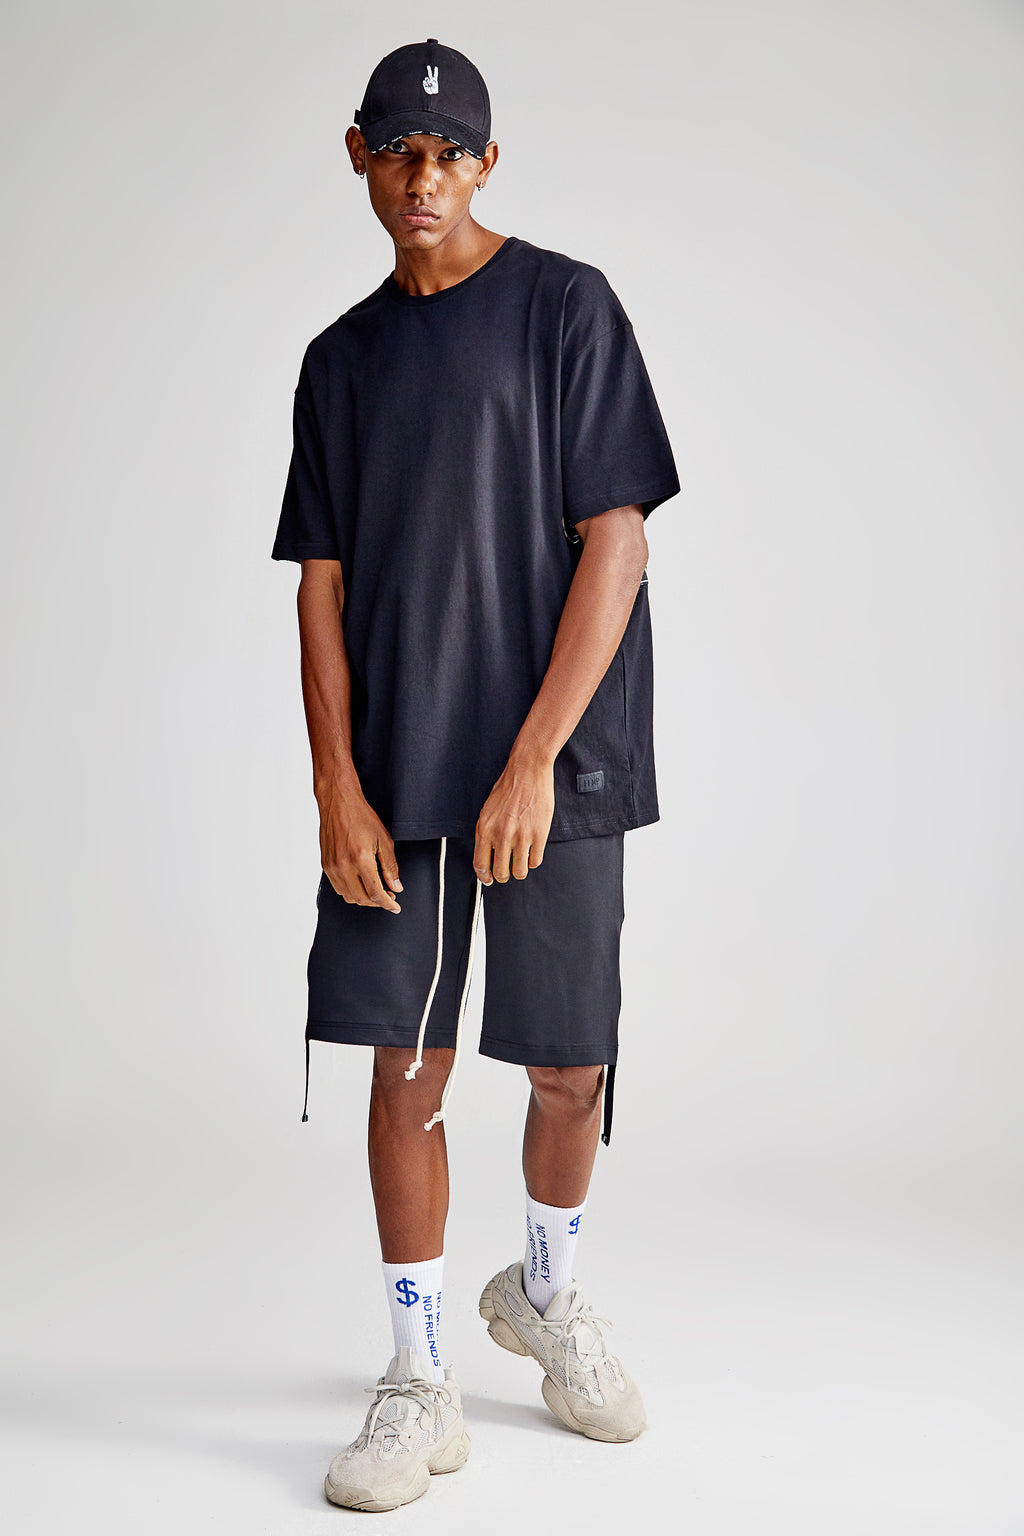 LOOPER OVERSIZED BLACK T-SHIRT